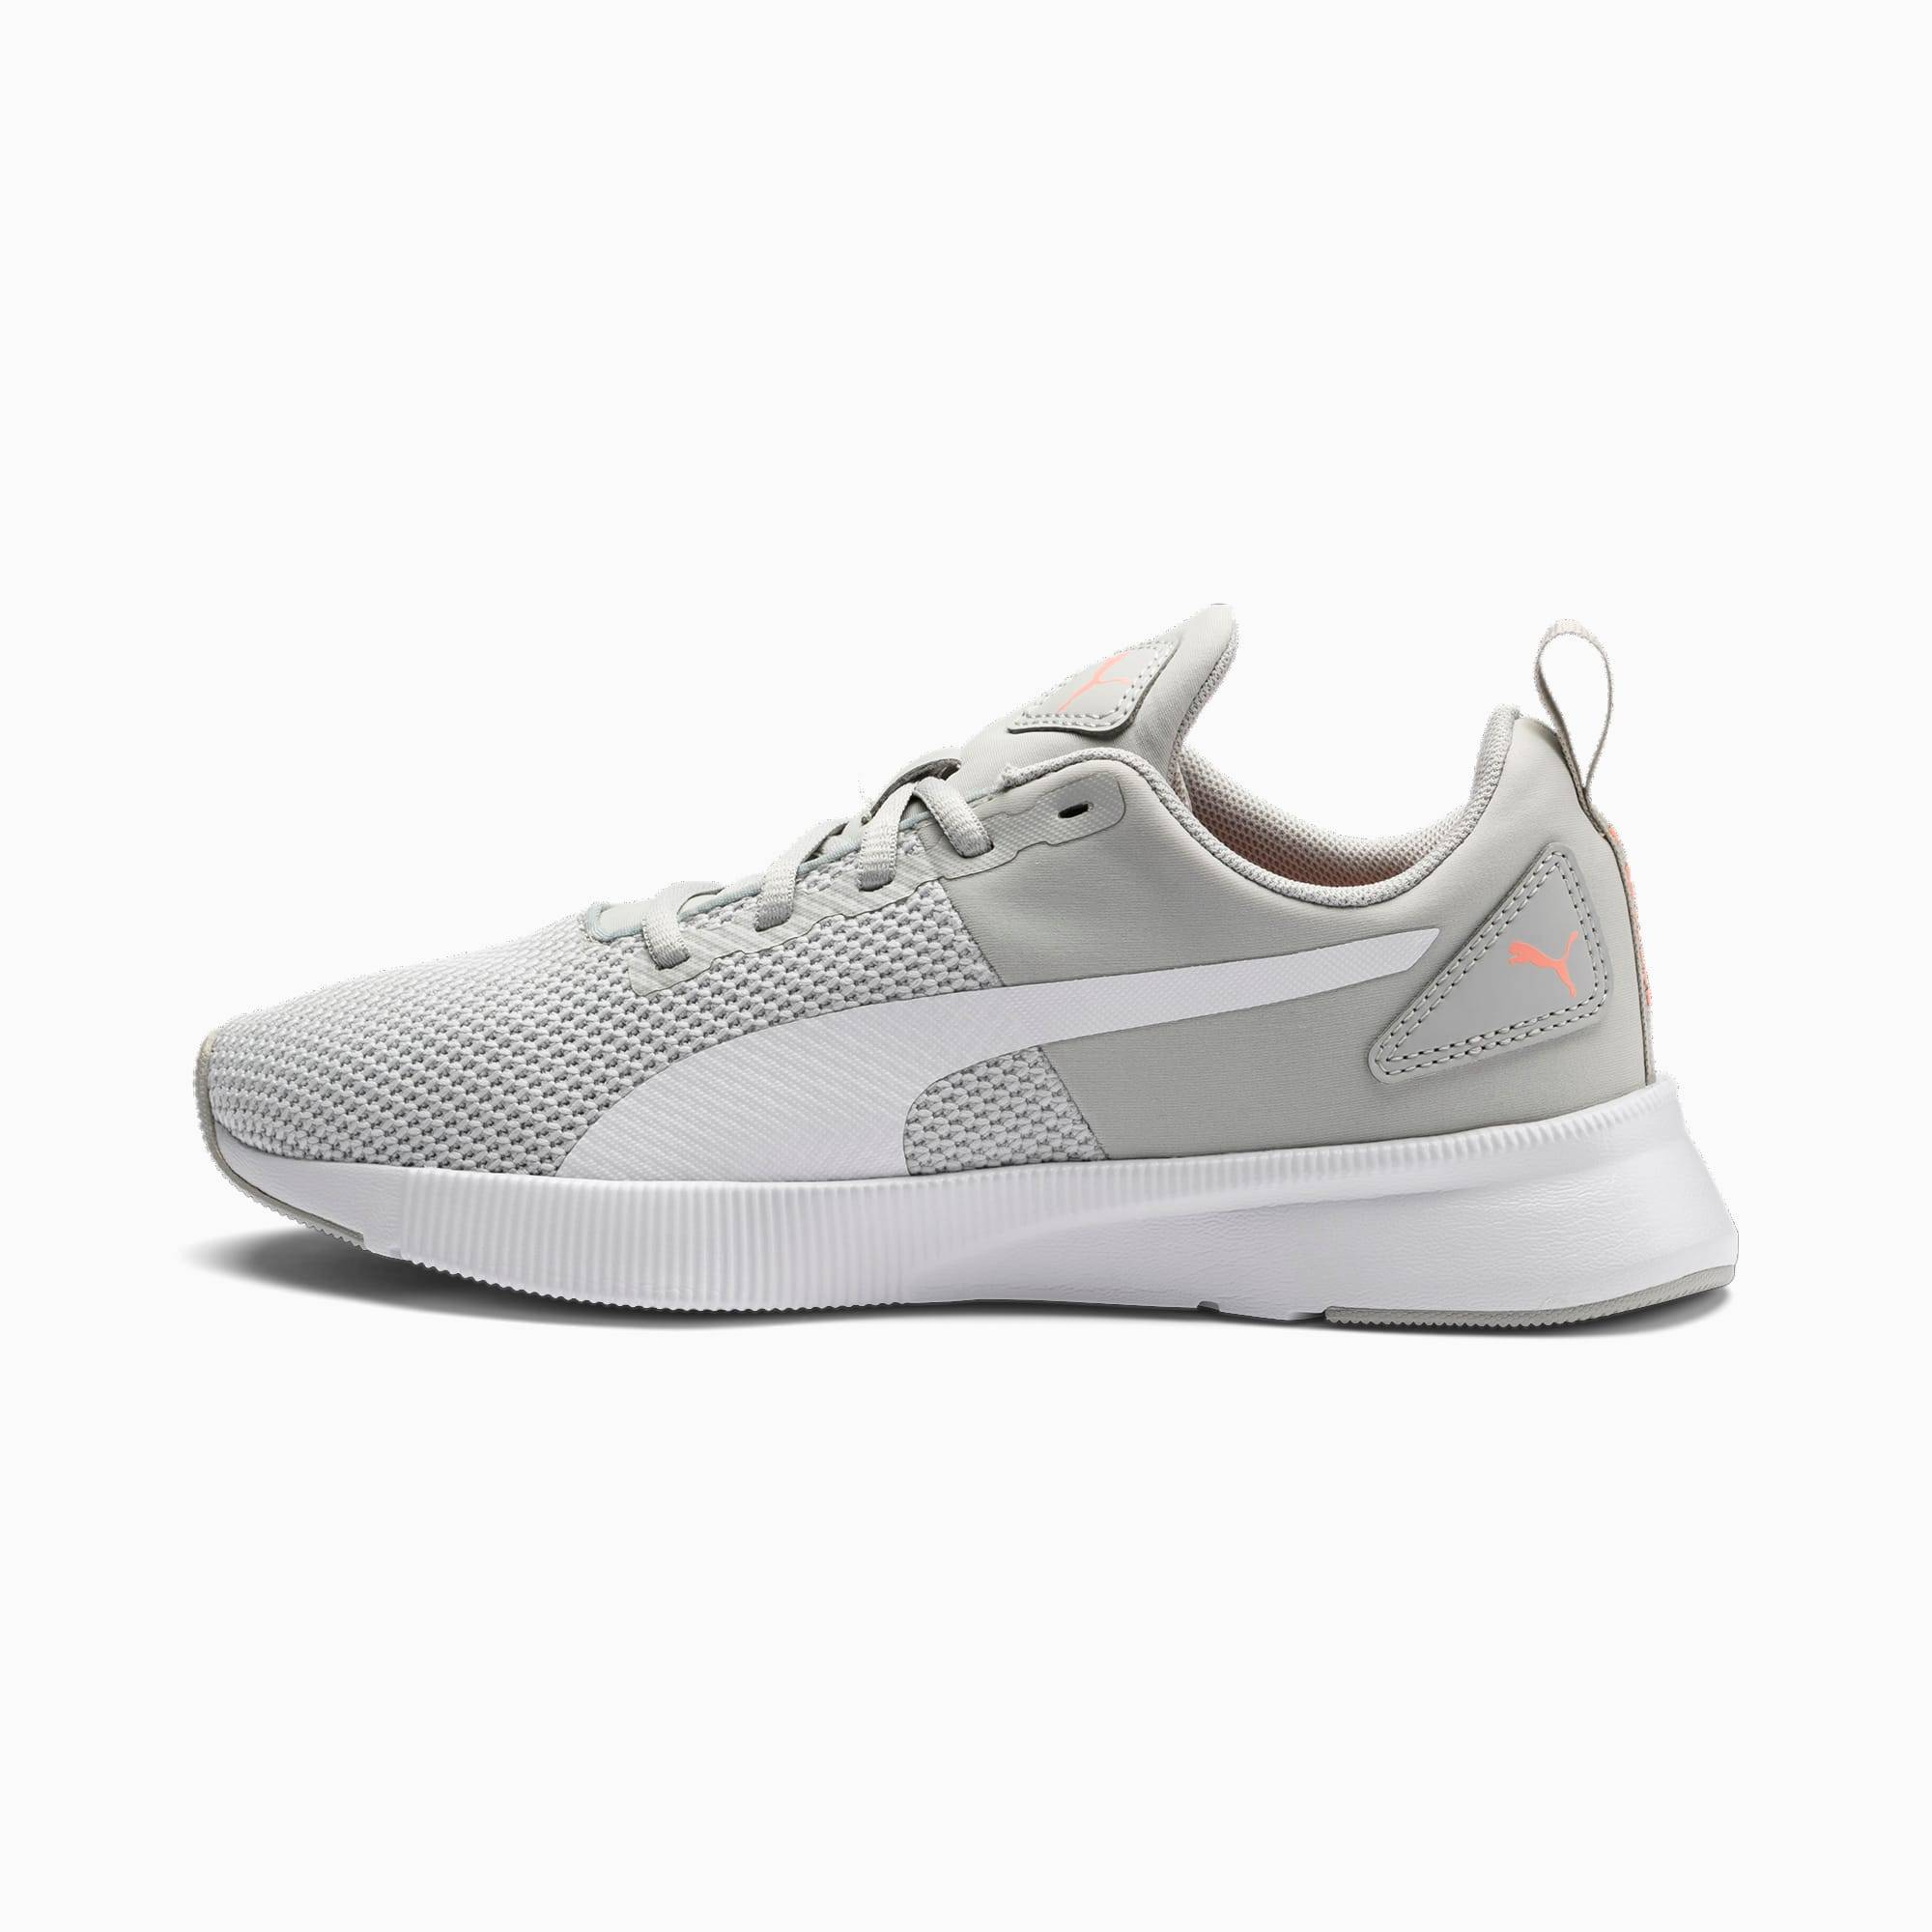 PUMA Chaussure de course Flyer Runner, Blanc/Rose/Gris, Taille 43, Chaussures